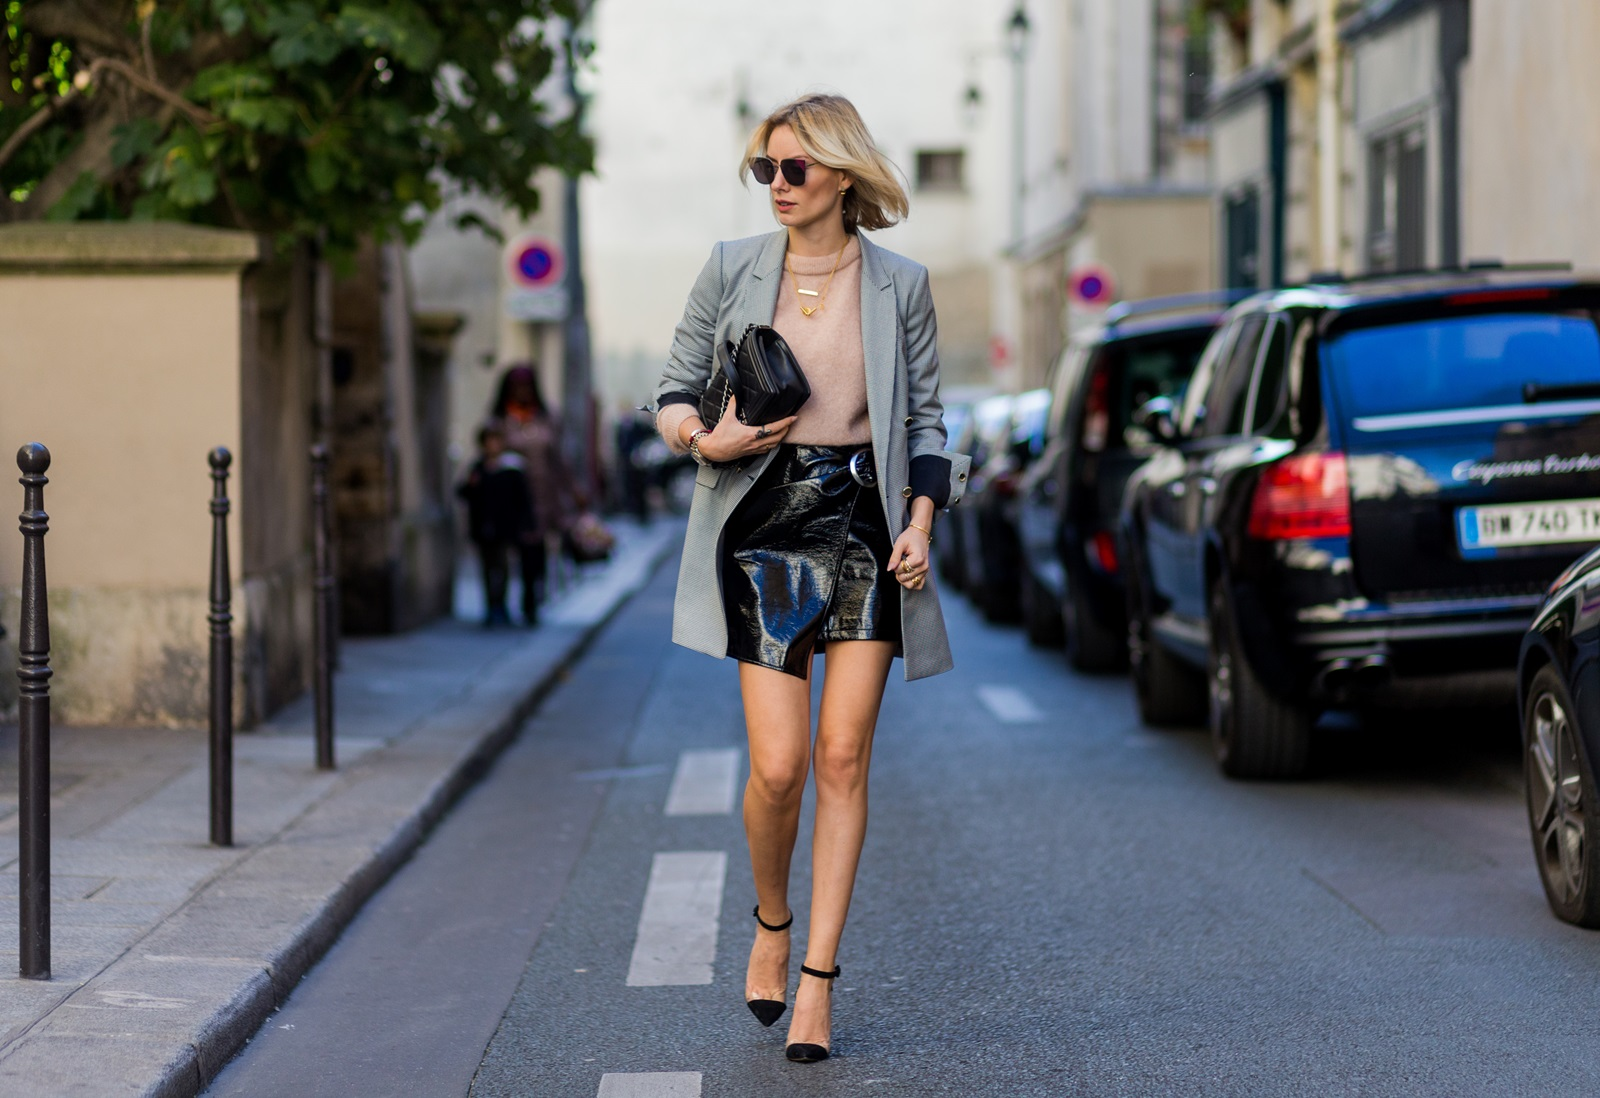 PARIS, FRANCE - OCTOBER 03: German fashion blogger Lisa Hahnbueck (@lisarvd) wearing Blazer: Guess, Knit: Acne Studios Skirt: Patent Asymmetric Leather Skirt Mango, Heels: Plexi Heels Gianvito Rossi, bag: Chanel Boy Bag, Sunglasses: Fendi outside Hermes on October 3, 2016 in Paris, France. (Photo by Christian Vierig/Getty Images) *** Local Caption *** Lisa Hahnbueck